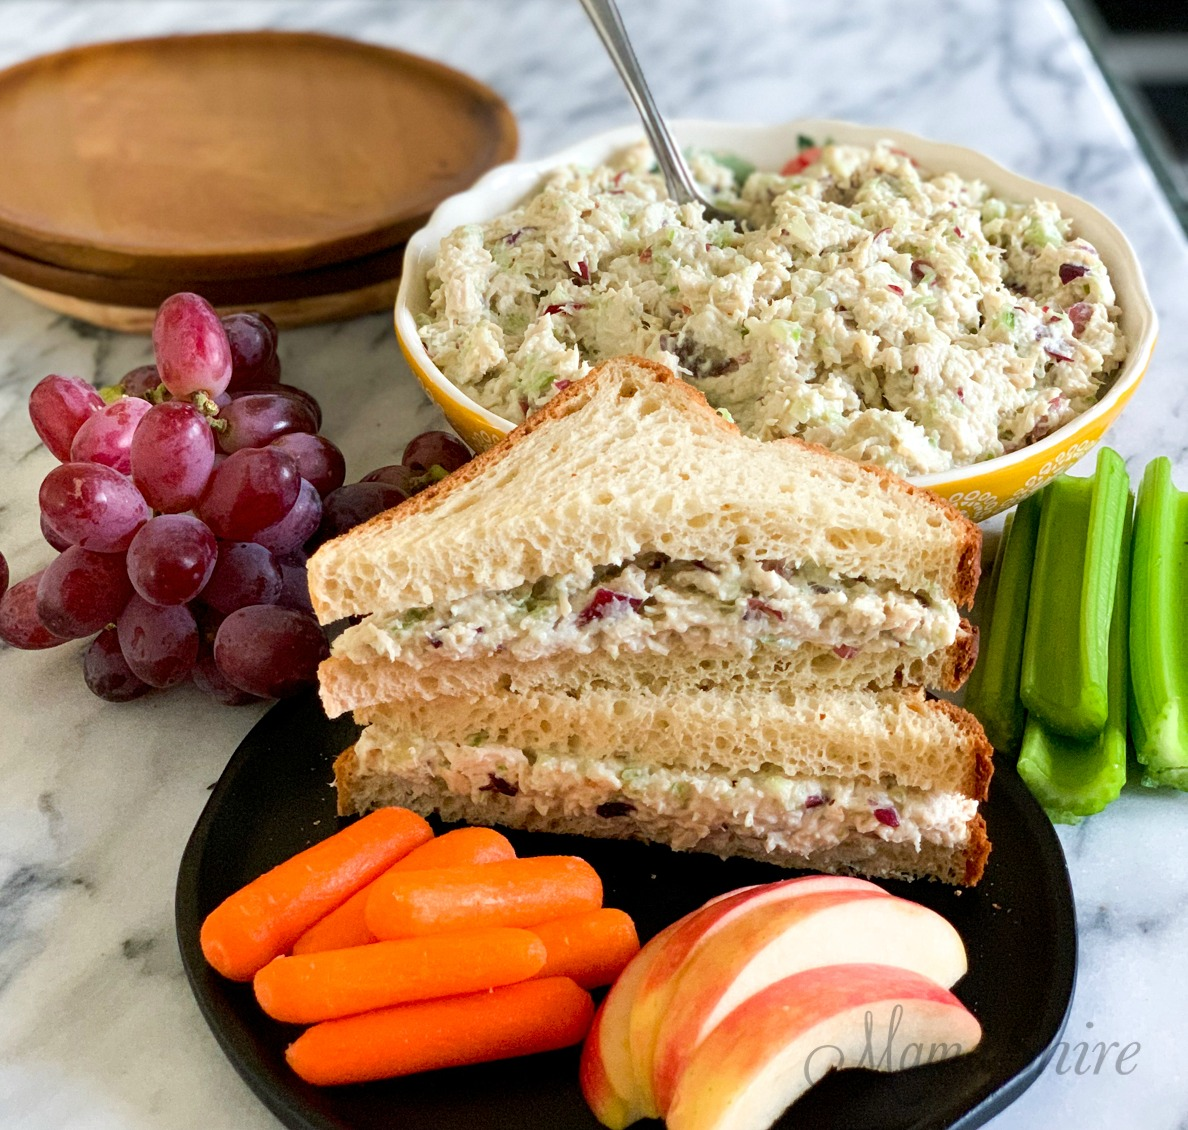 Gluten-free chicken salad sandwiches